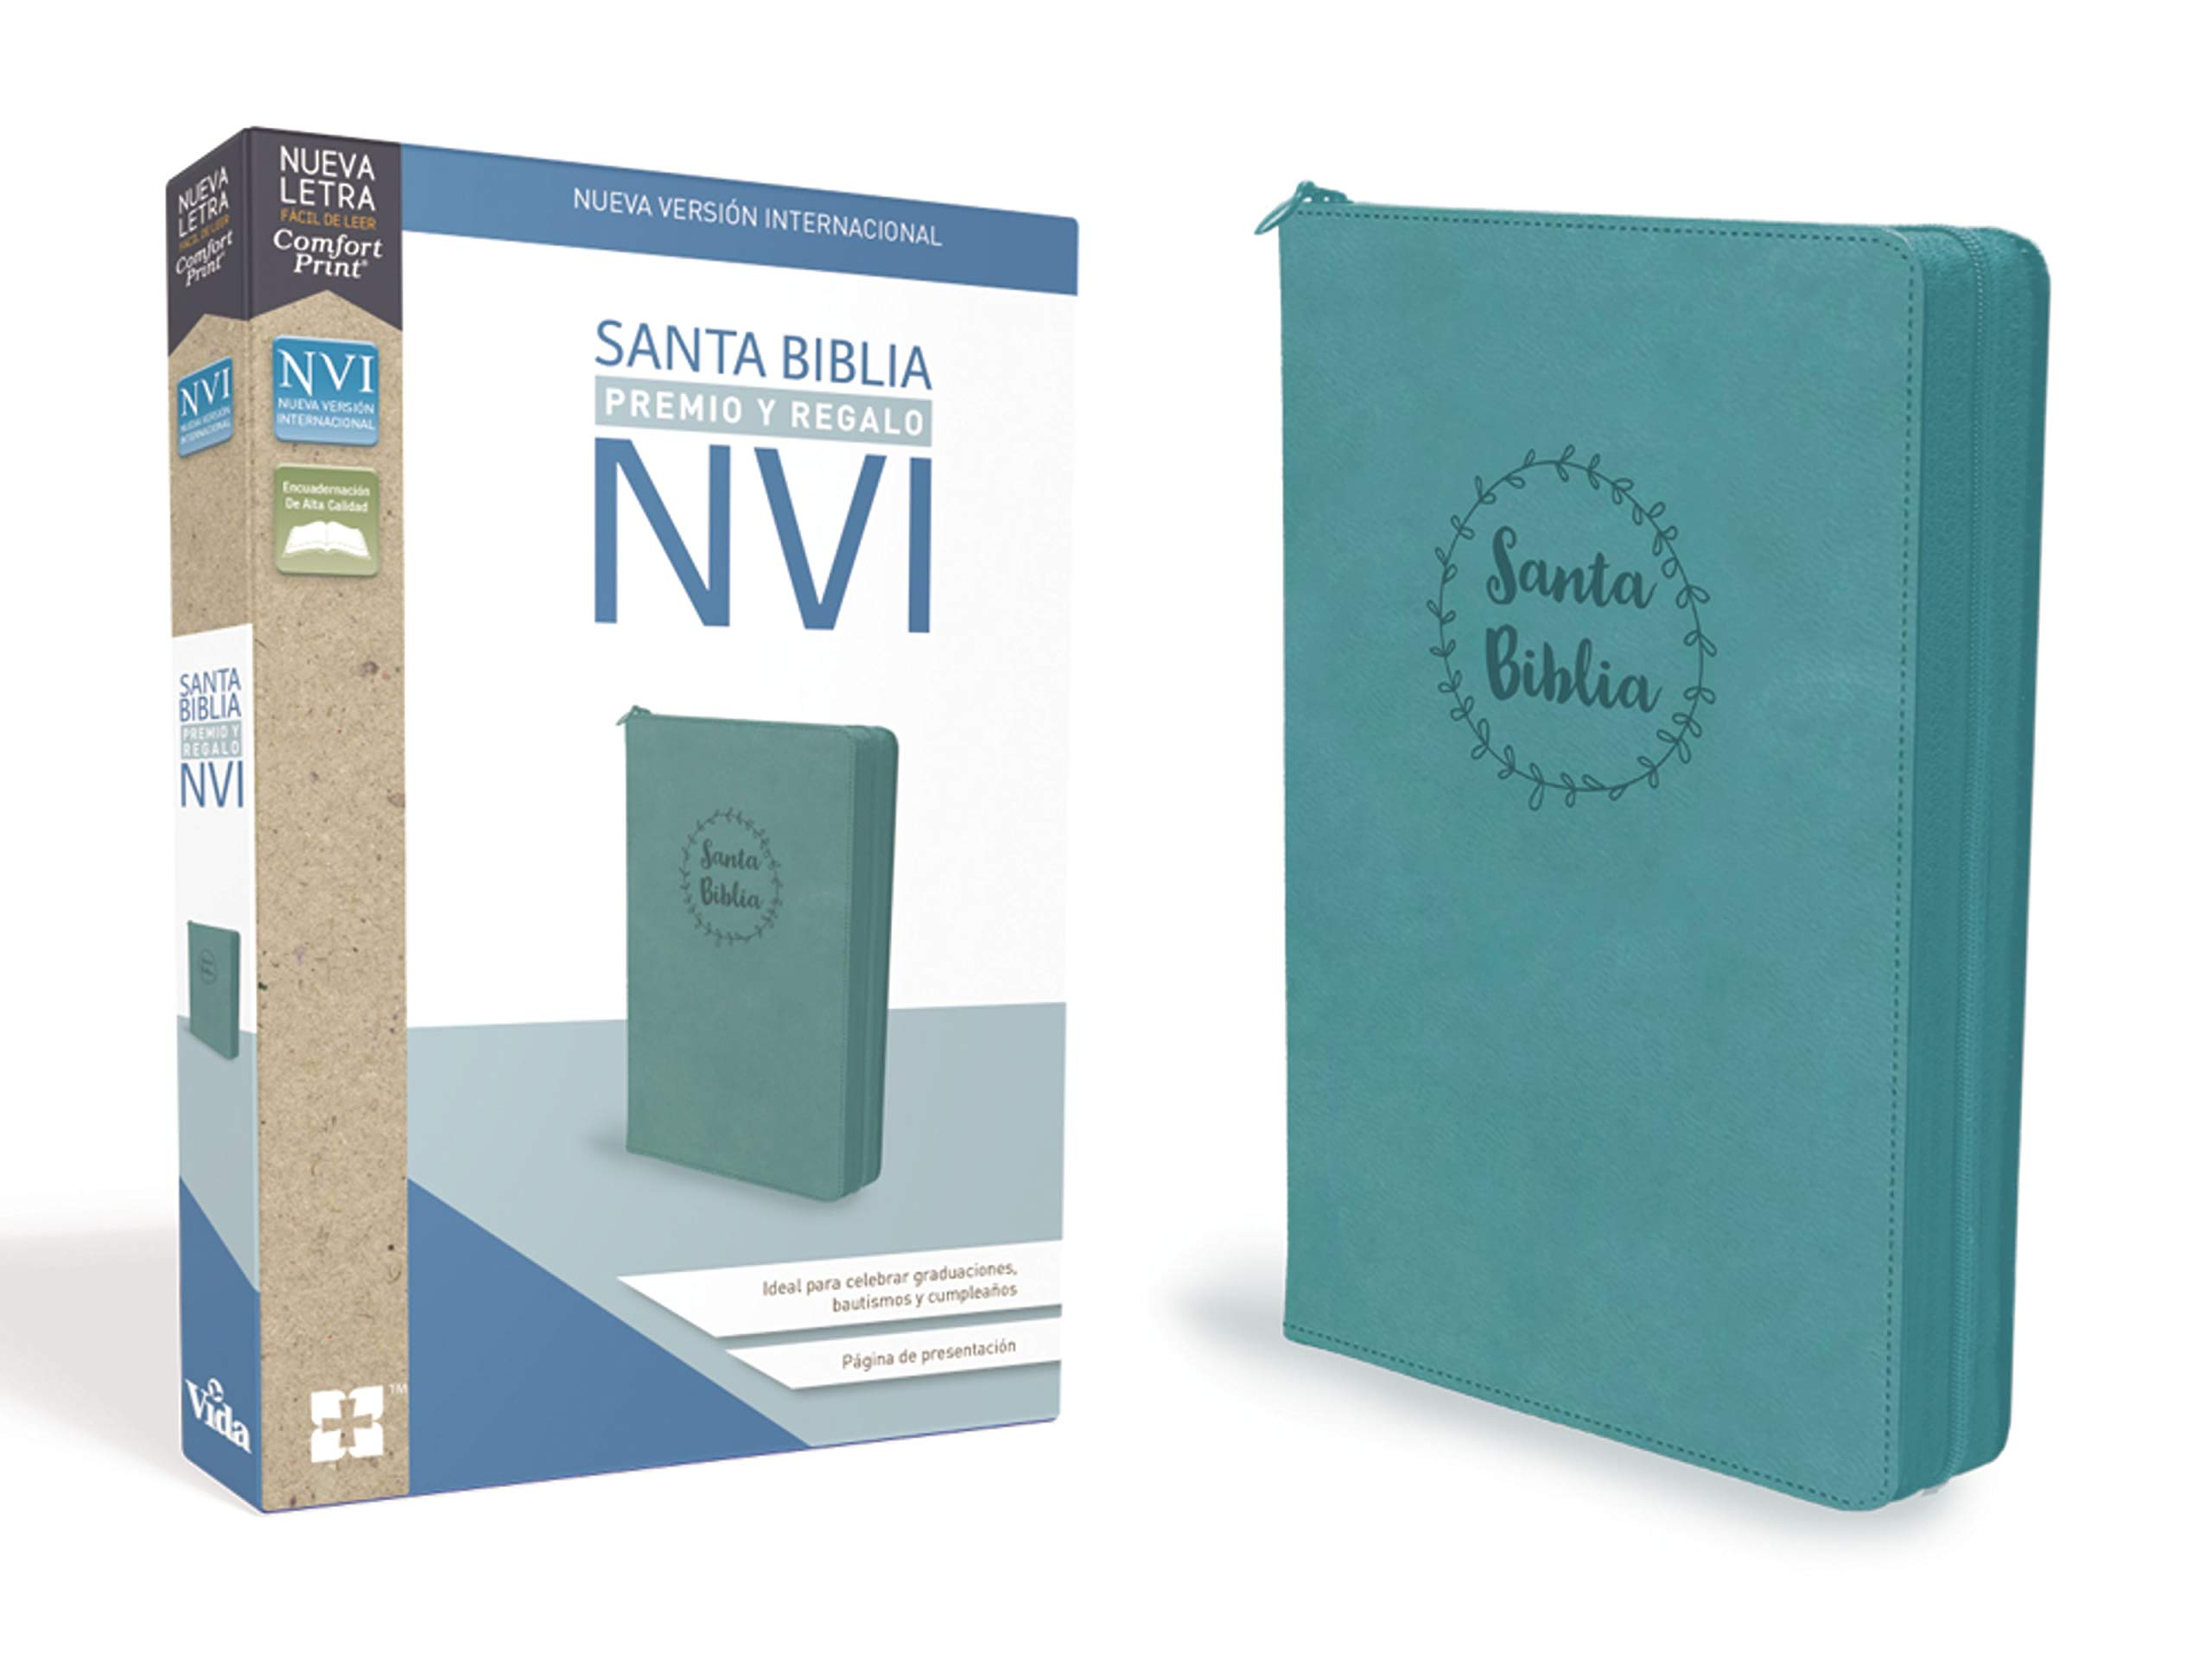 Santa Biblia de Premio y Regalo NVI, Leathersoft, Aqua con Cremallera  (Spanish) Leather Bound – Apr 2 2019